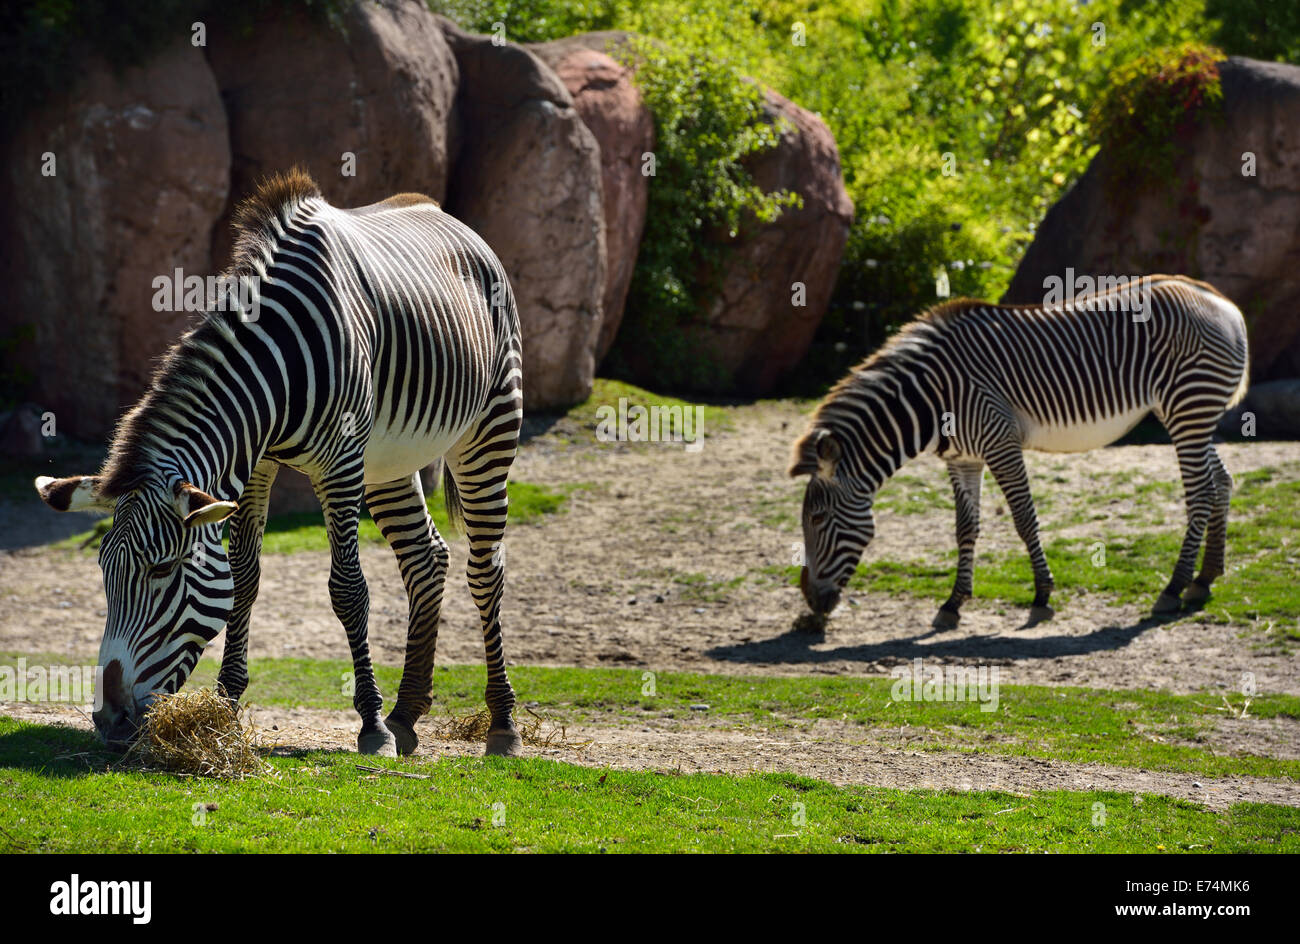 Two Grevy's Zebras Equus grevyi grazing on grass Toronto zoo Stock Photo